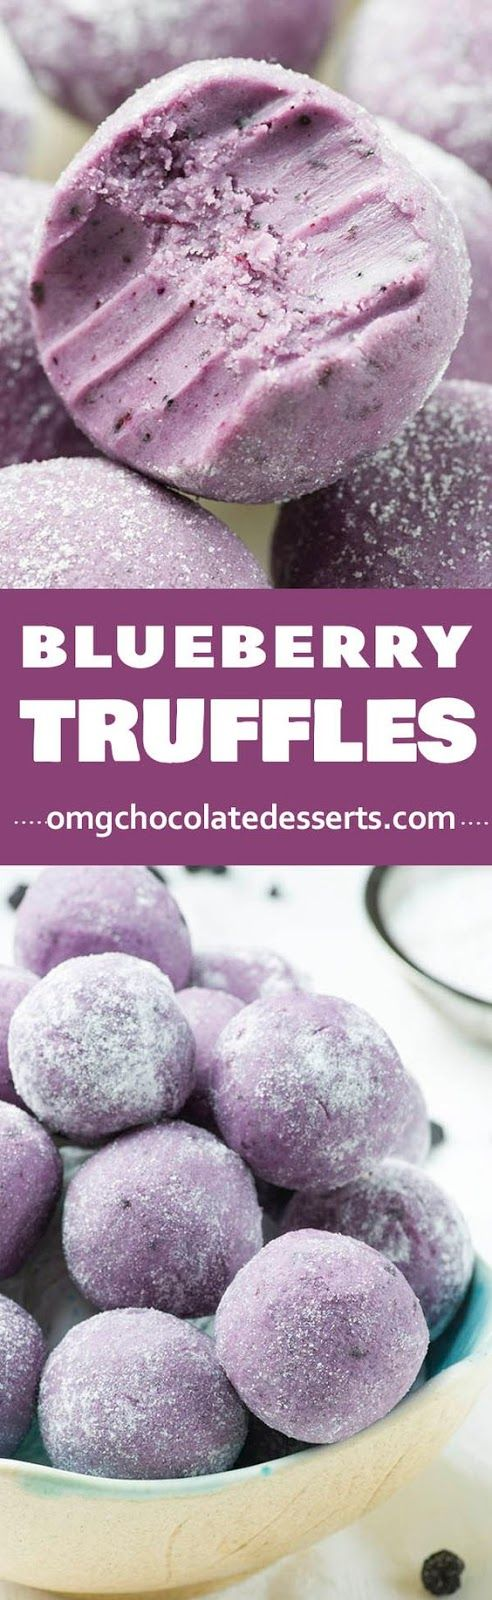 Description Blueberry Truffles – no bake dessert recipe ! This easy truffle recipe are actually bites of melted white chocolate and d...